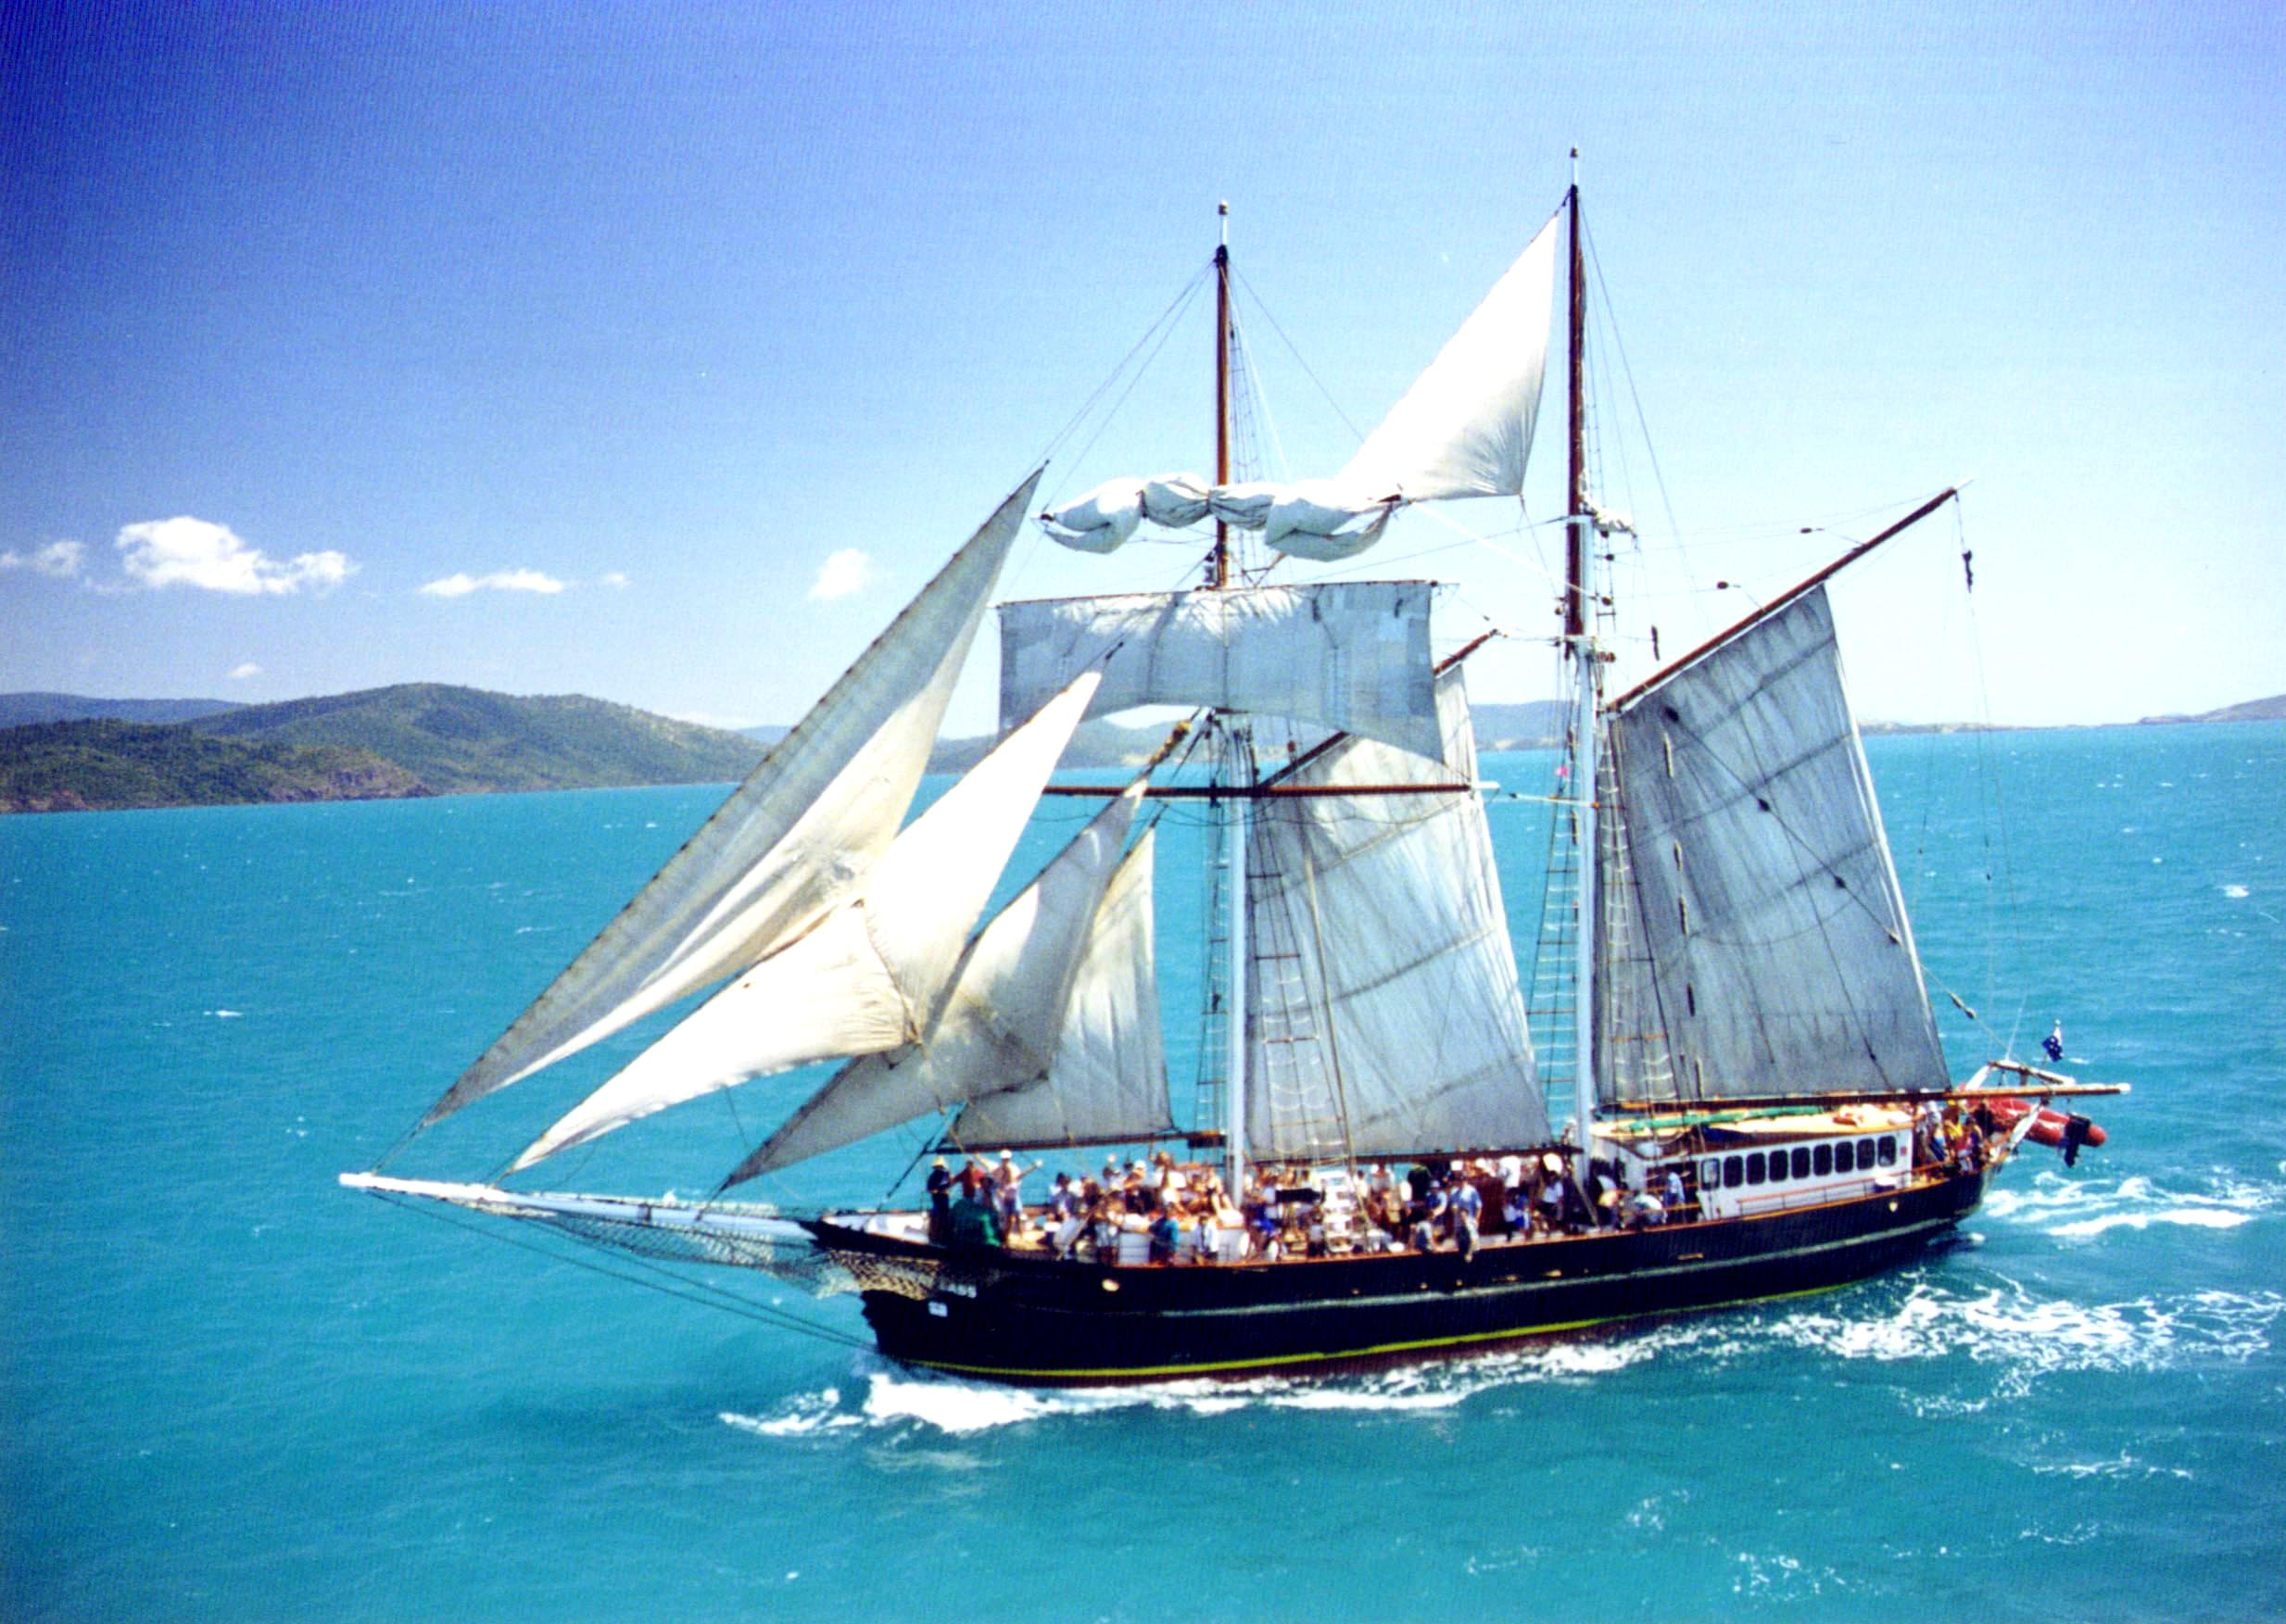 Solway Lass - Whitsunday Islands Overnight tour - cruising